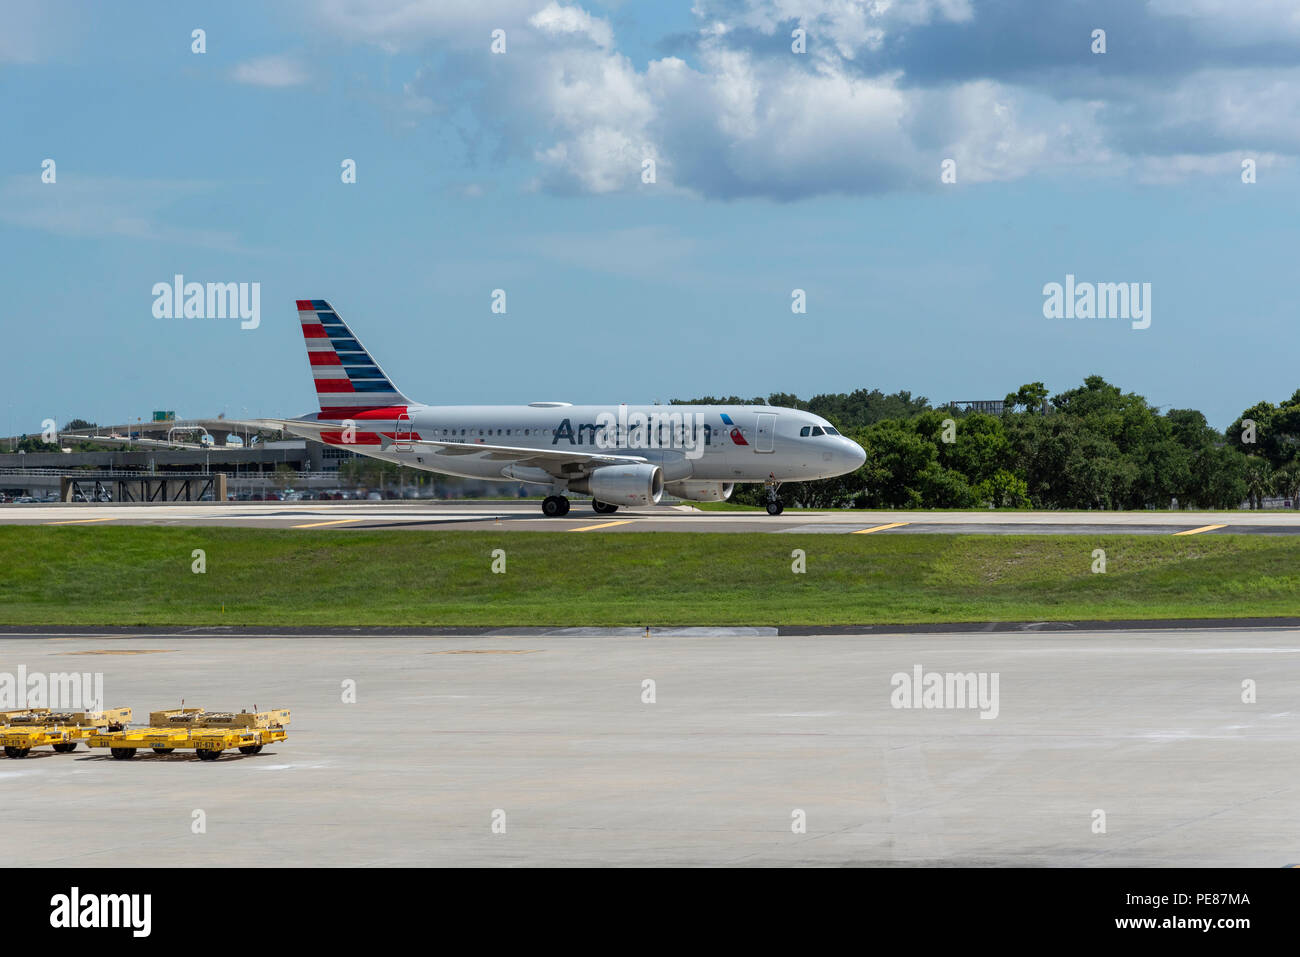 Aircraft taxiway on elevated section at Tampa International Airport, Florida, USA. 2018. An American comapny Airbus A319 on the taxiway Stock Photo